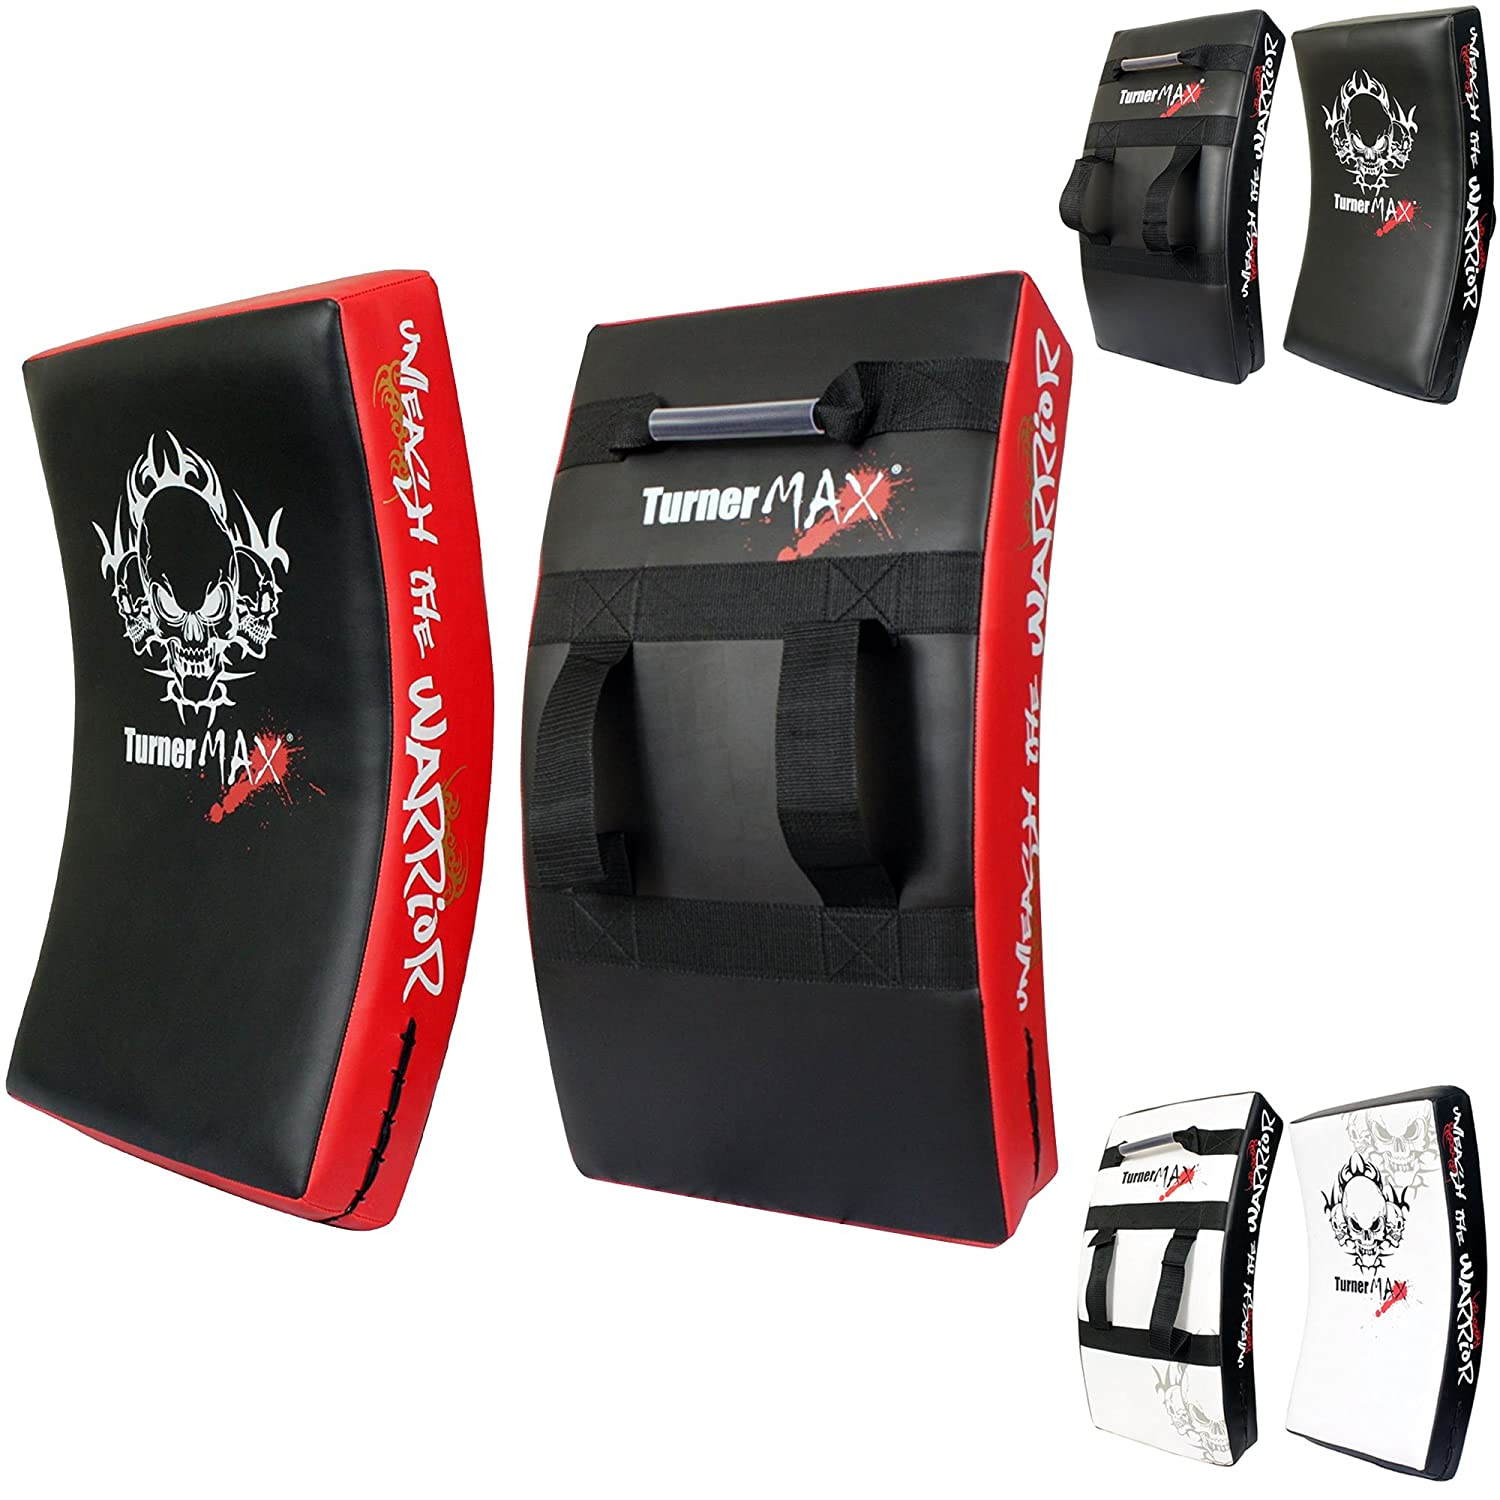 TurnerMAX BOXING KICK PAD, CURVED STRIKE SHIELD, Training for MMA, Kick Boxing, Karate - 赤/Blk